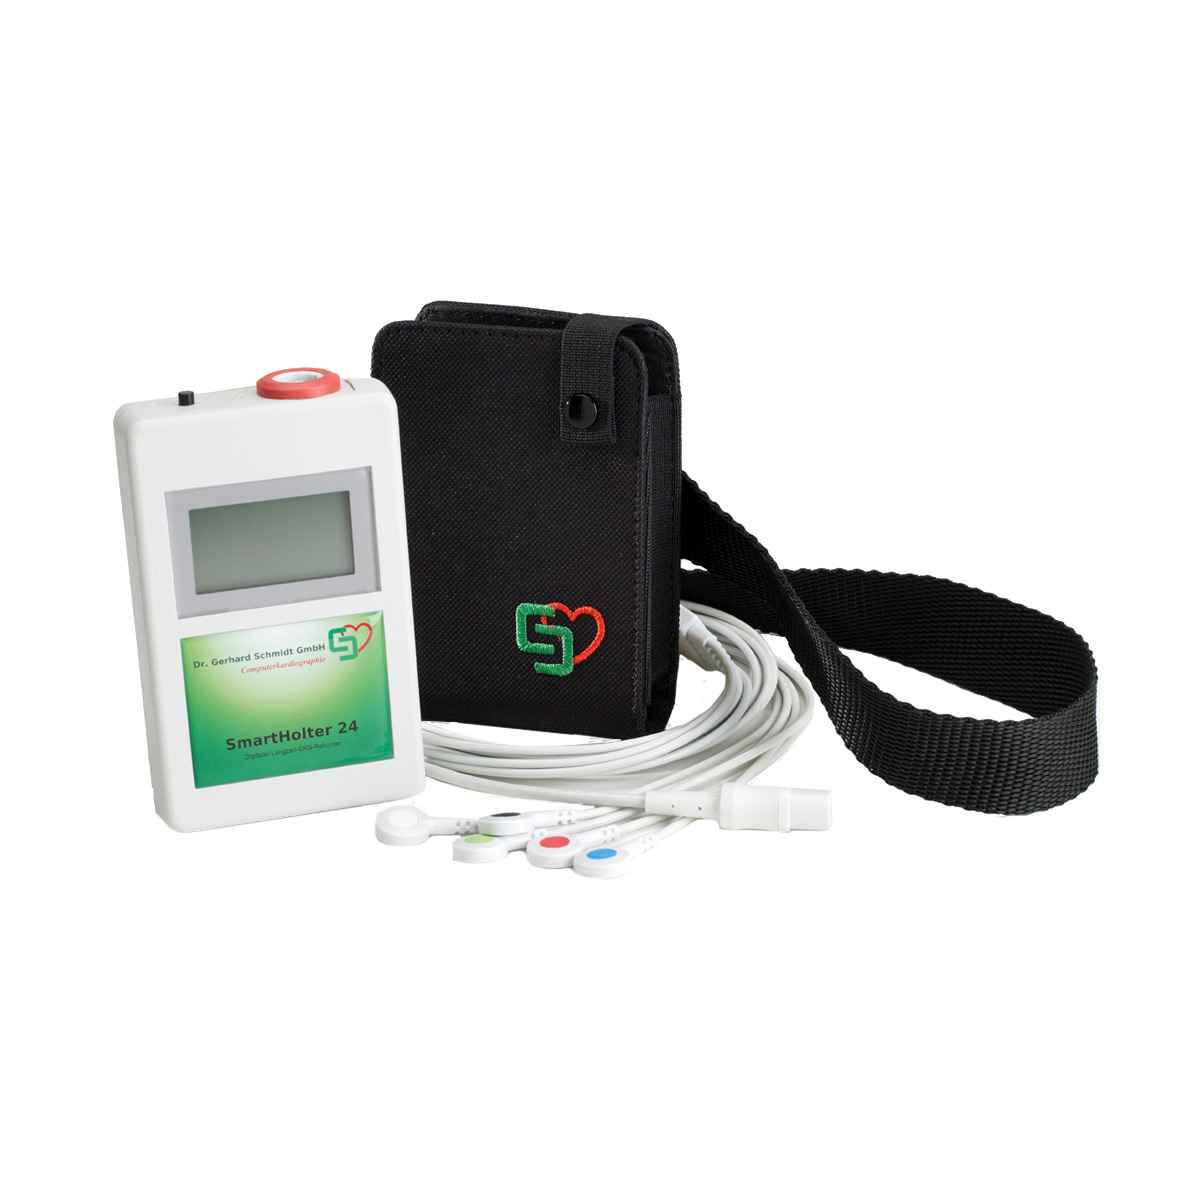 SmartHolter24 Holter ECG Device